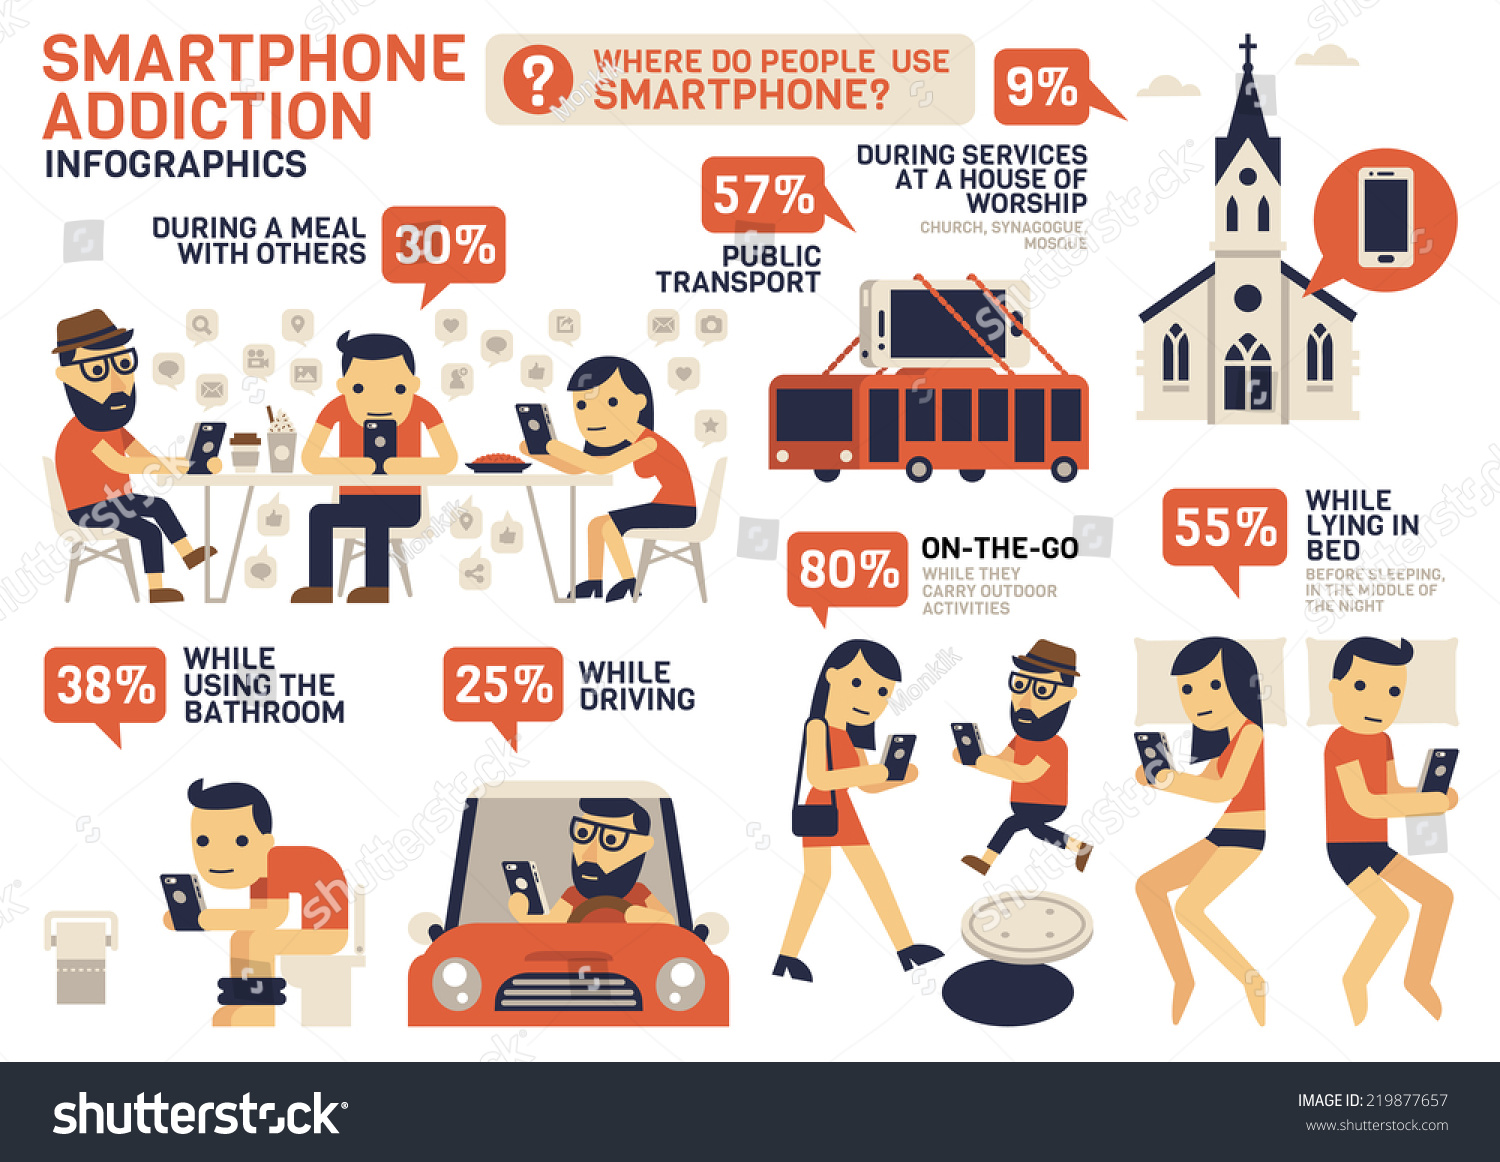 smartphone addiction essay Smartphones are an integral part of most people's lives, allowing us to stay connected and in-the-know at all times the downside of that convenience is that many of us are also addicted to the constant pings, chimes, vibrations and other alerts from our devices, unable to ignore new emails, texts and images.